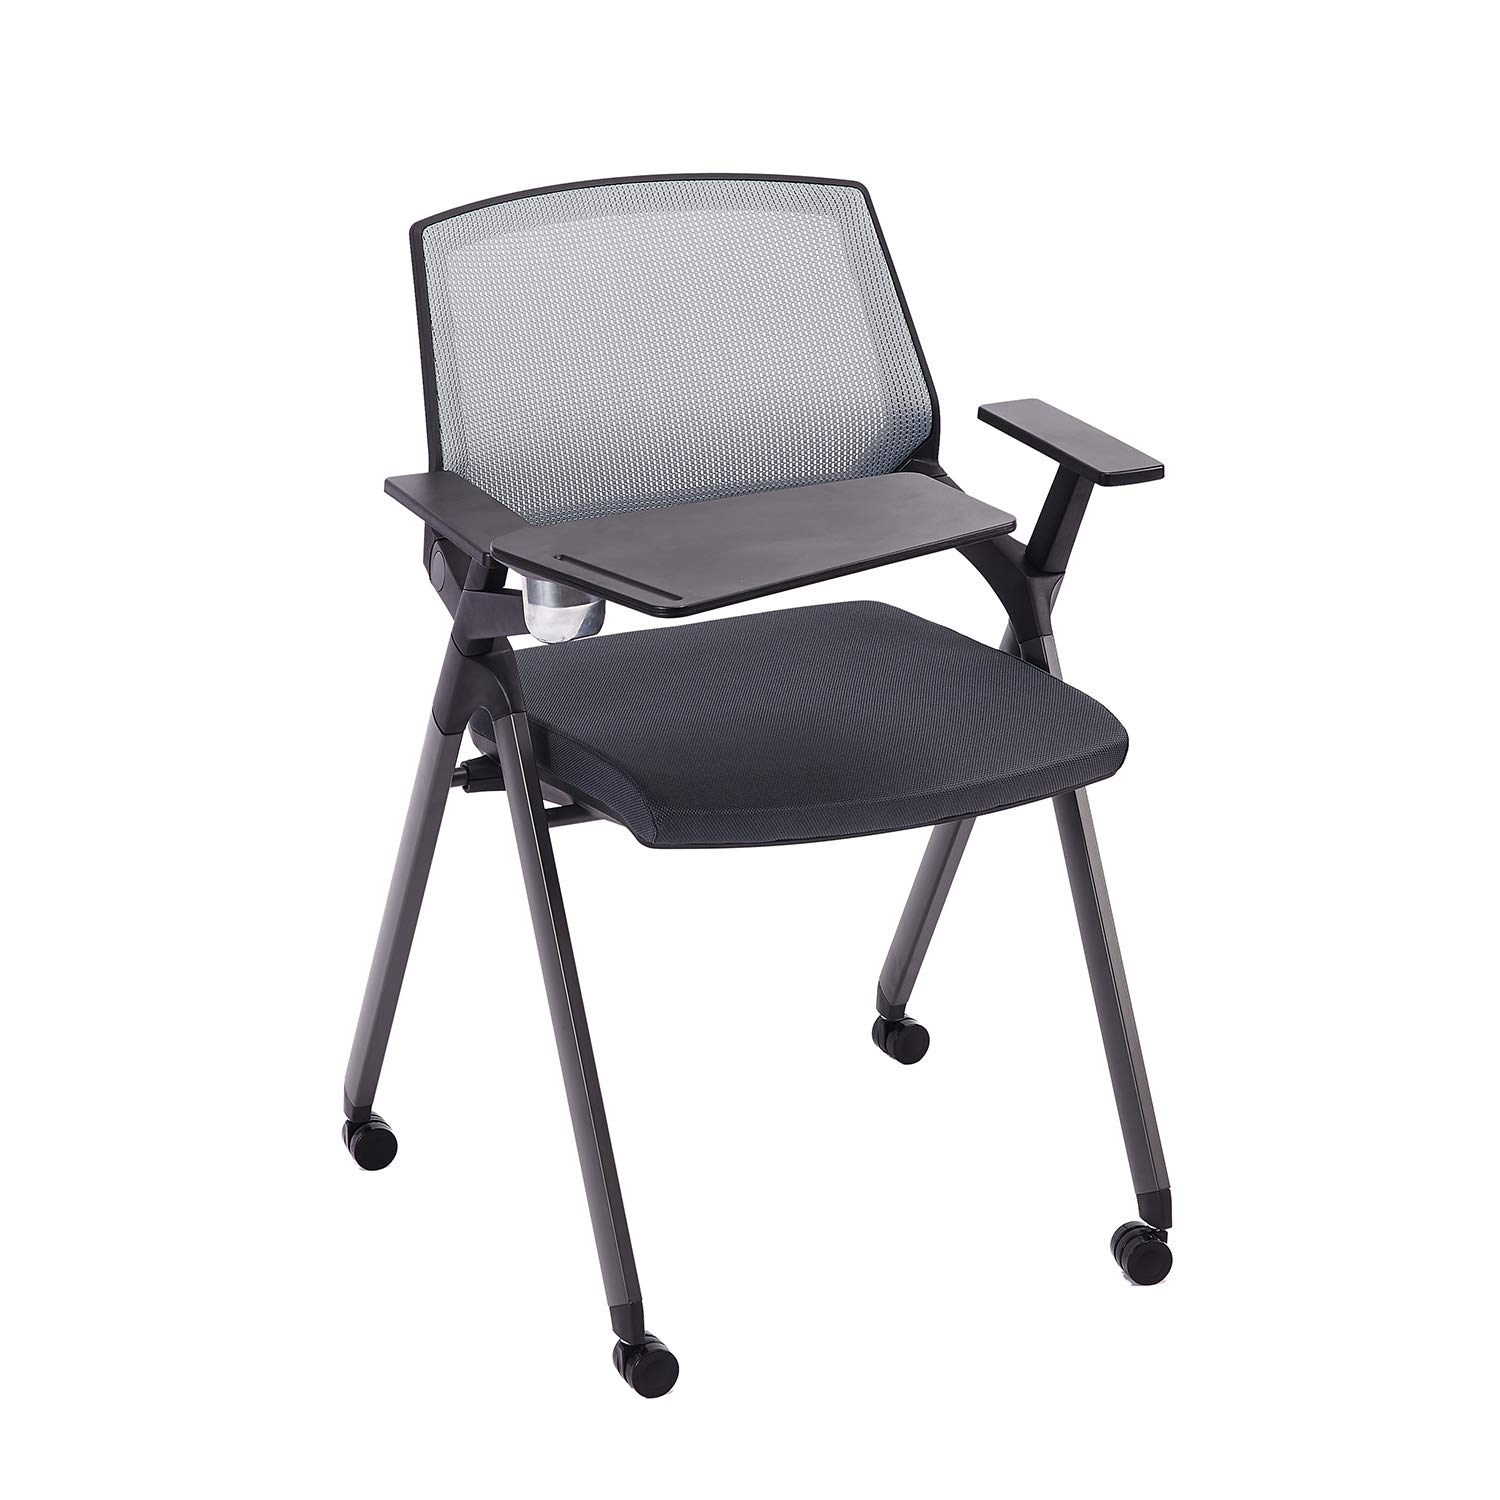 CLATINA Reception Stacking Chair Mesh Guest Nesting with Tablet and Caster Wheels for Office School Training Conference Waiting Room BIFMA Certified Gray